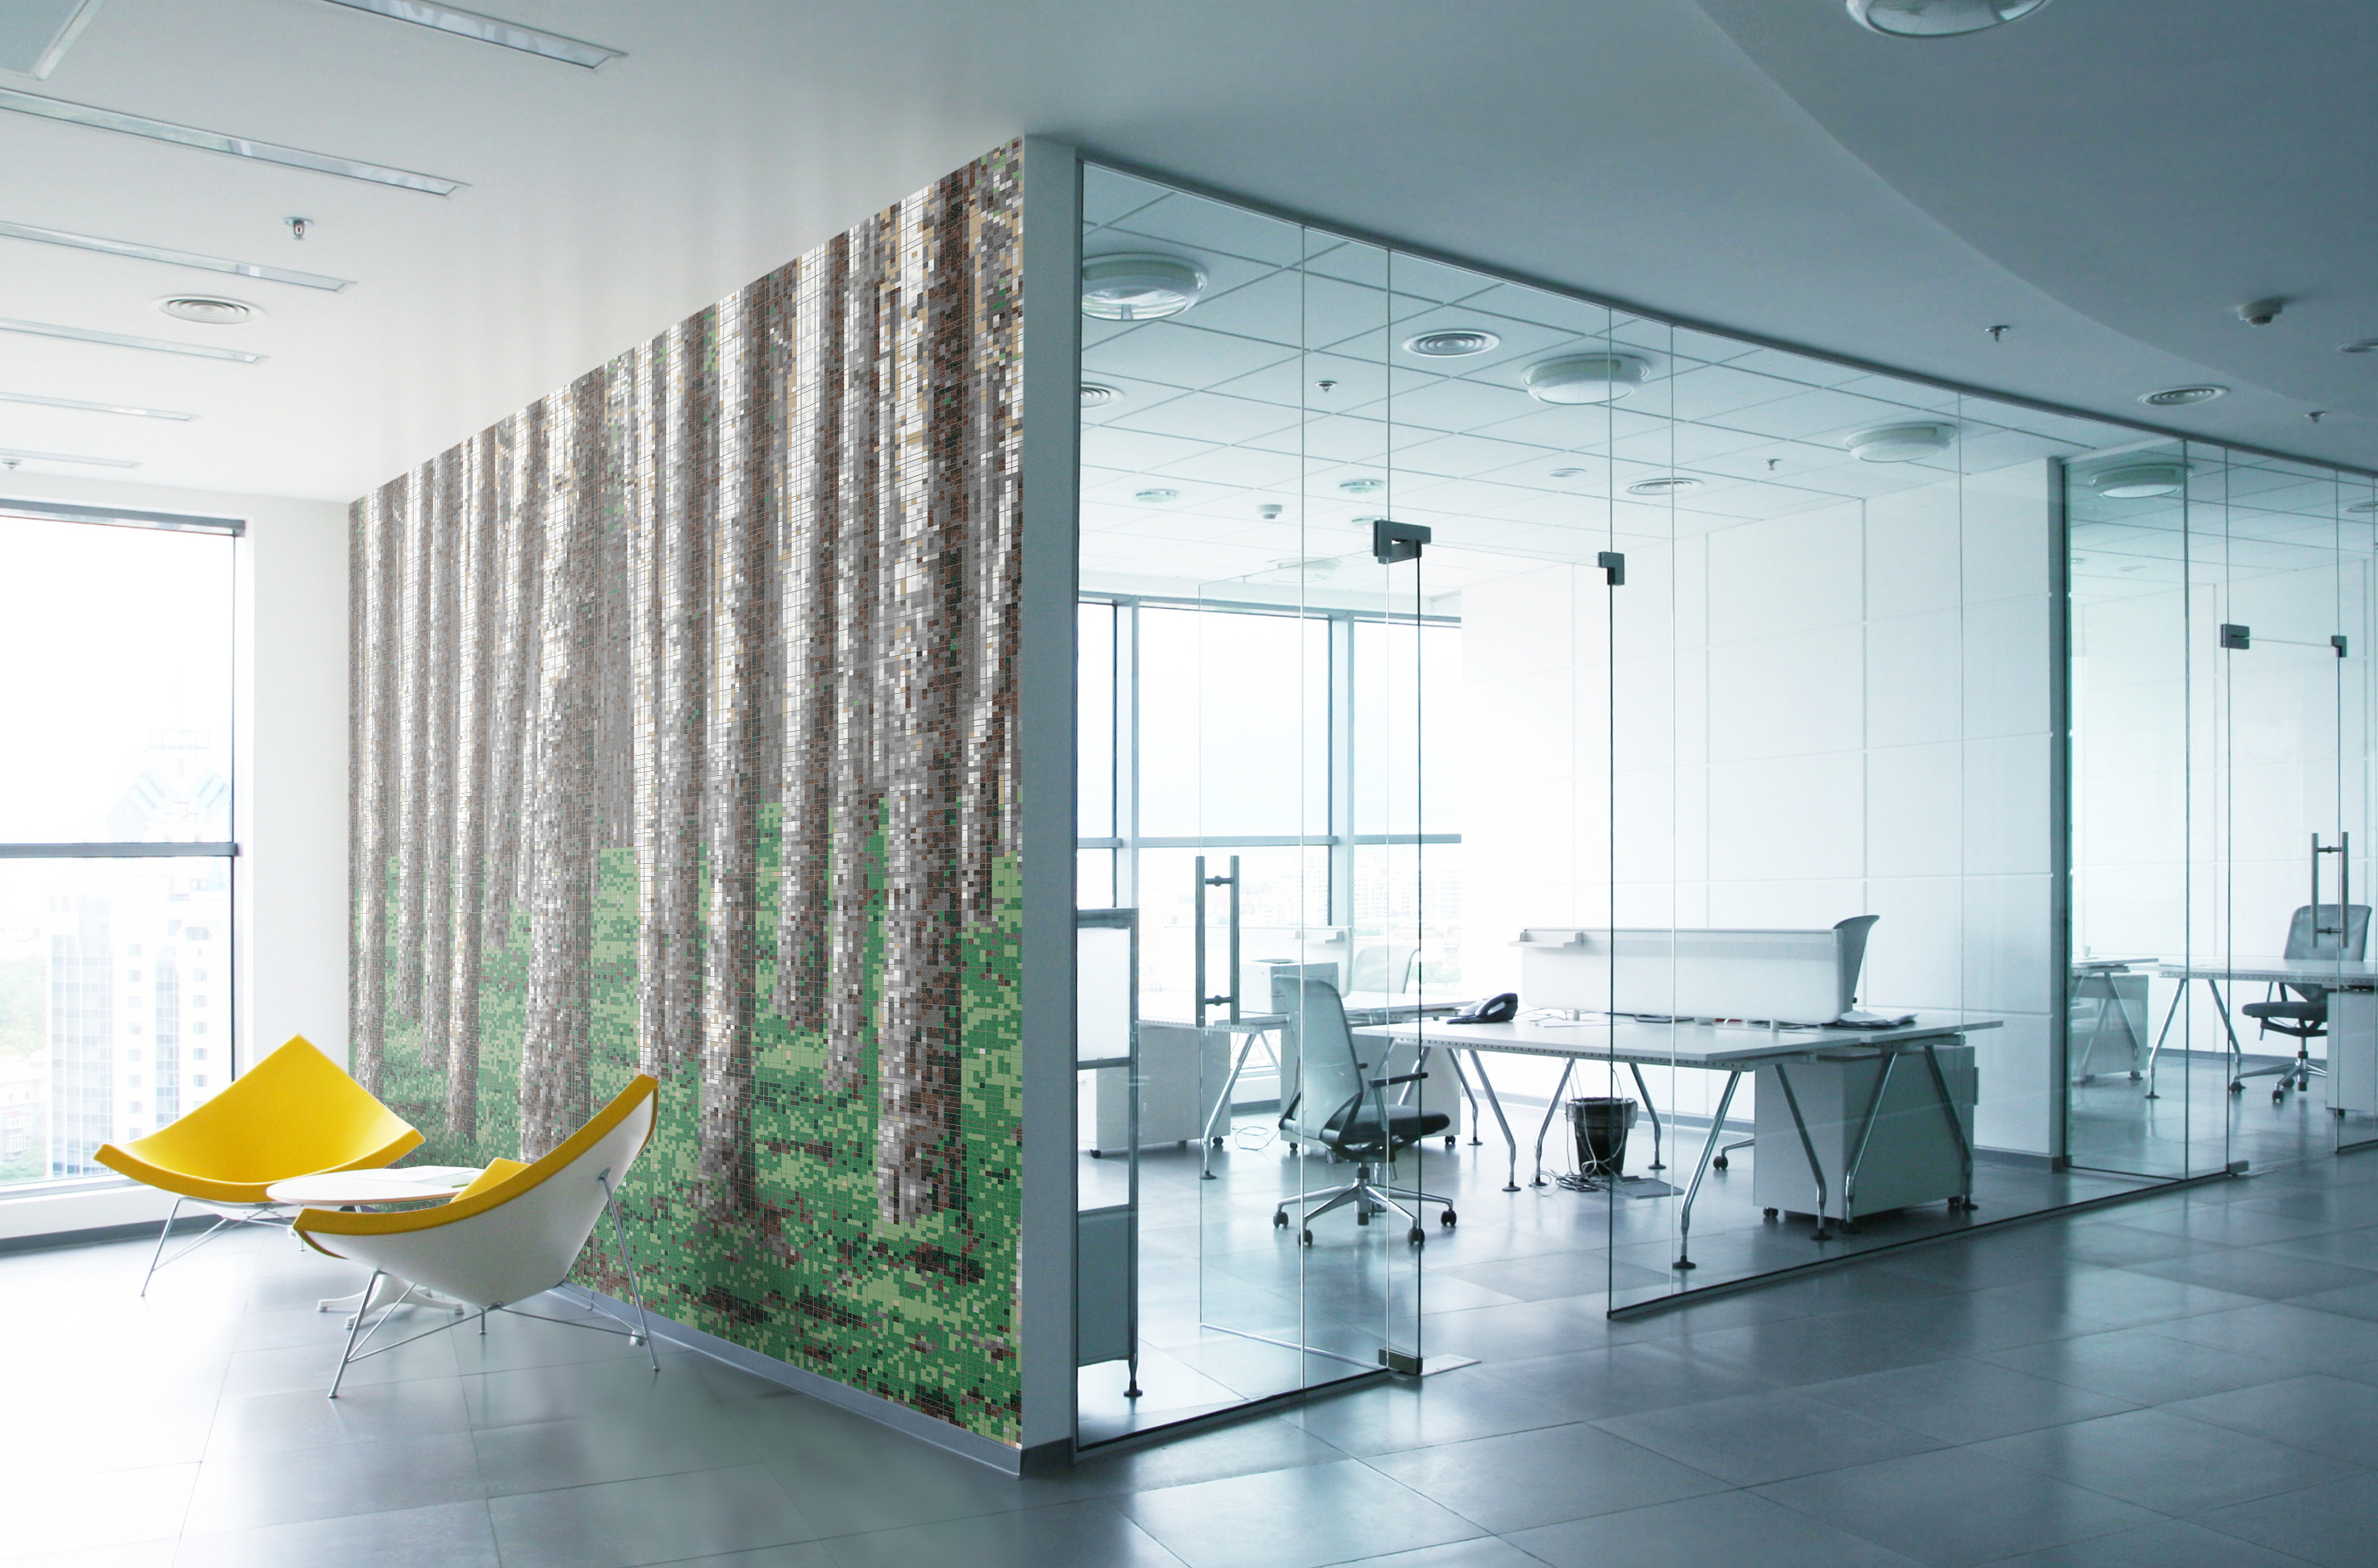 0120703-woodspire-virid-green-nature-tree-forest-mosaic-tile-design-office-wall_artaic